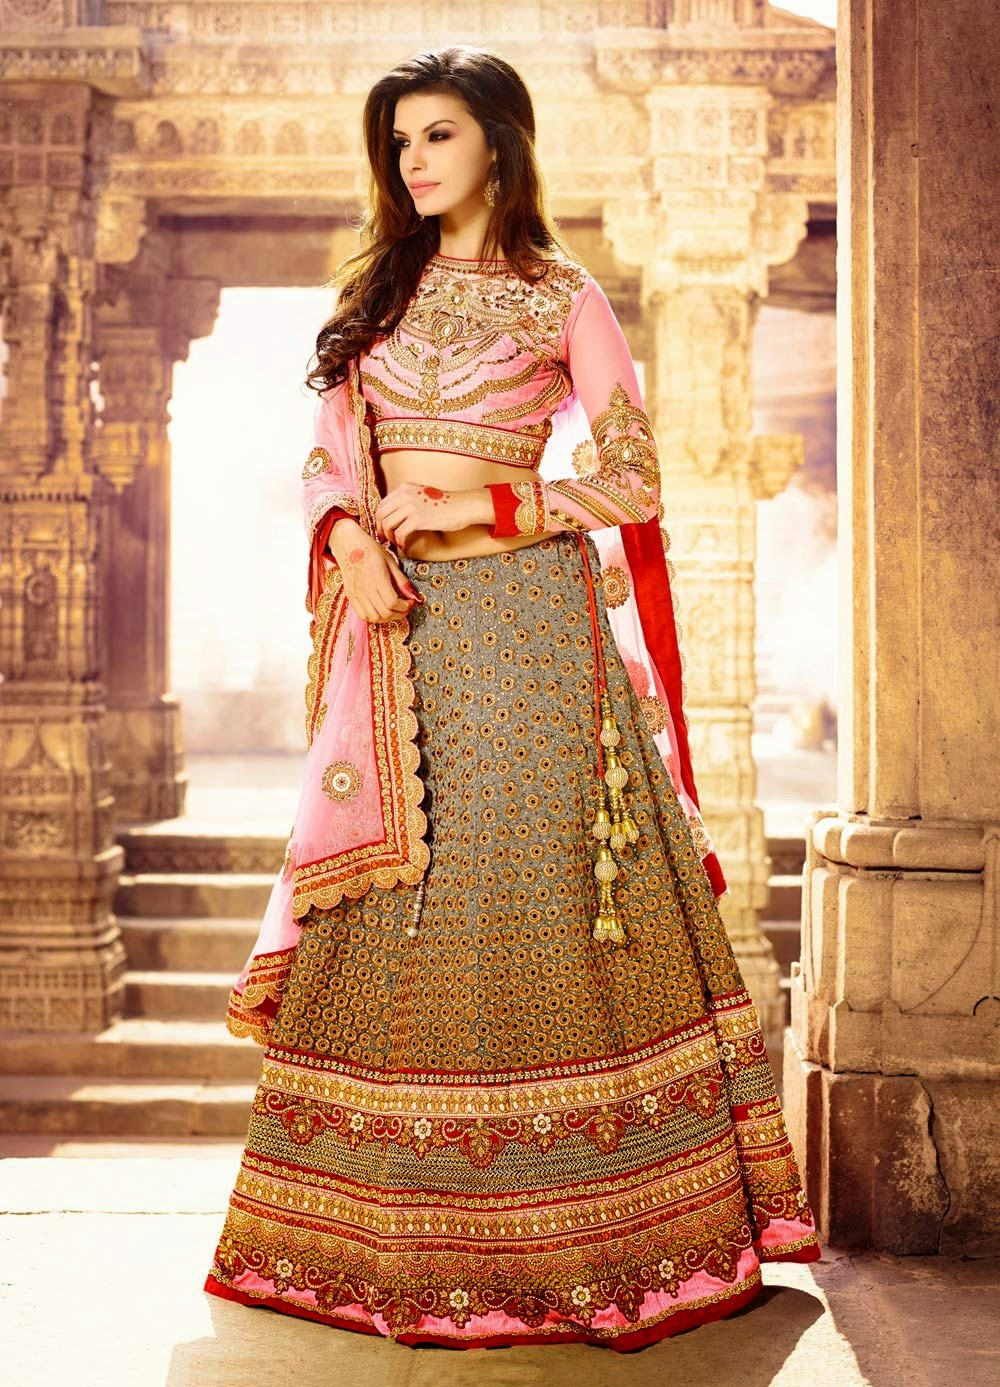 Bollywood replica sarees in bangalore dating 1